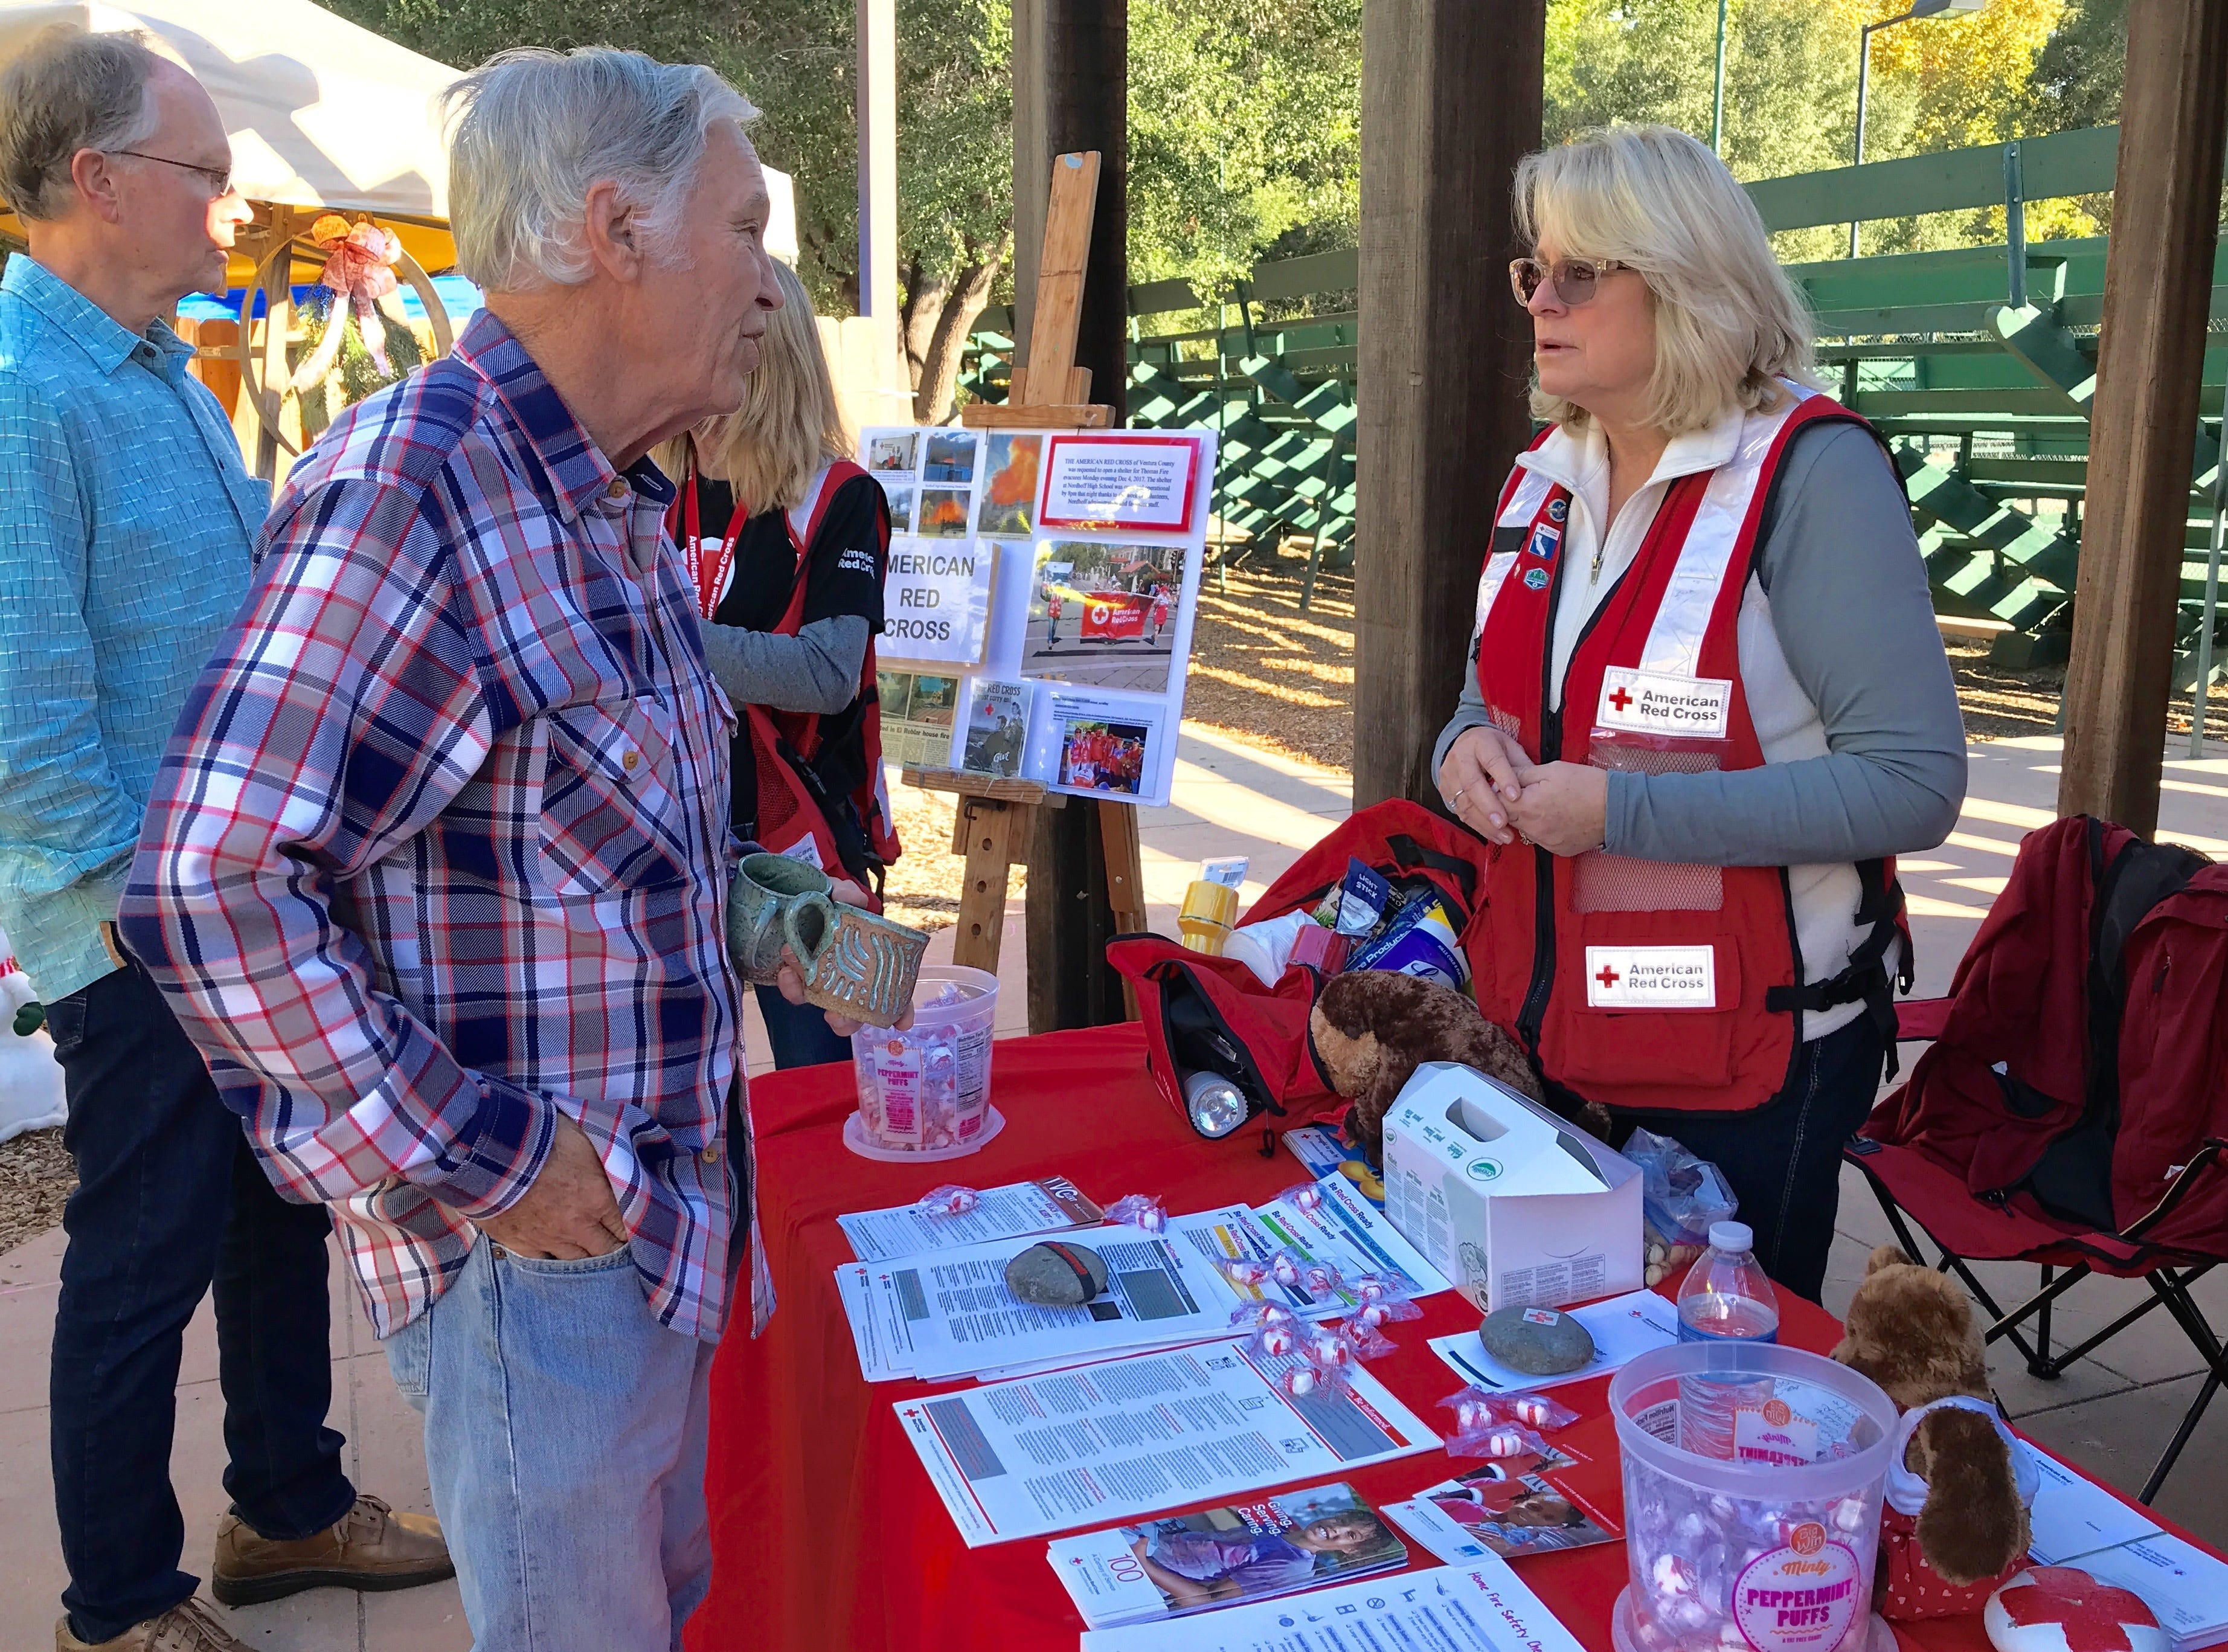 Red Cross volunteer Cindy Anderson speaks with Ojai resident Terry Mahurin at a booth set up for the 1 Year Thomas Fire Remembrance Event at Libbey Park on Saturday.